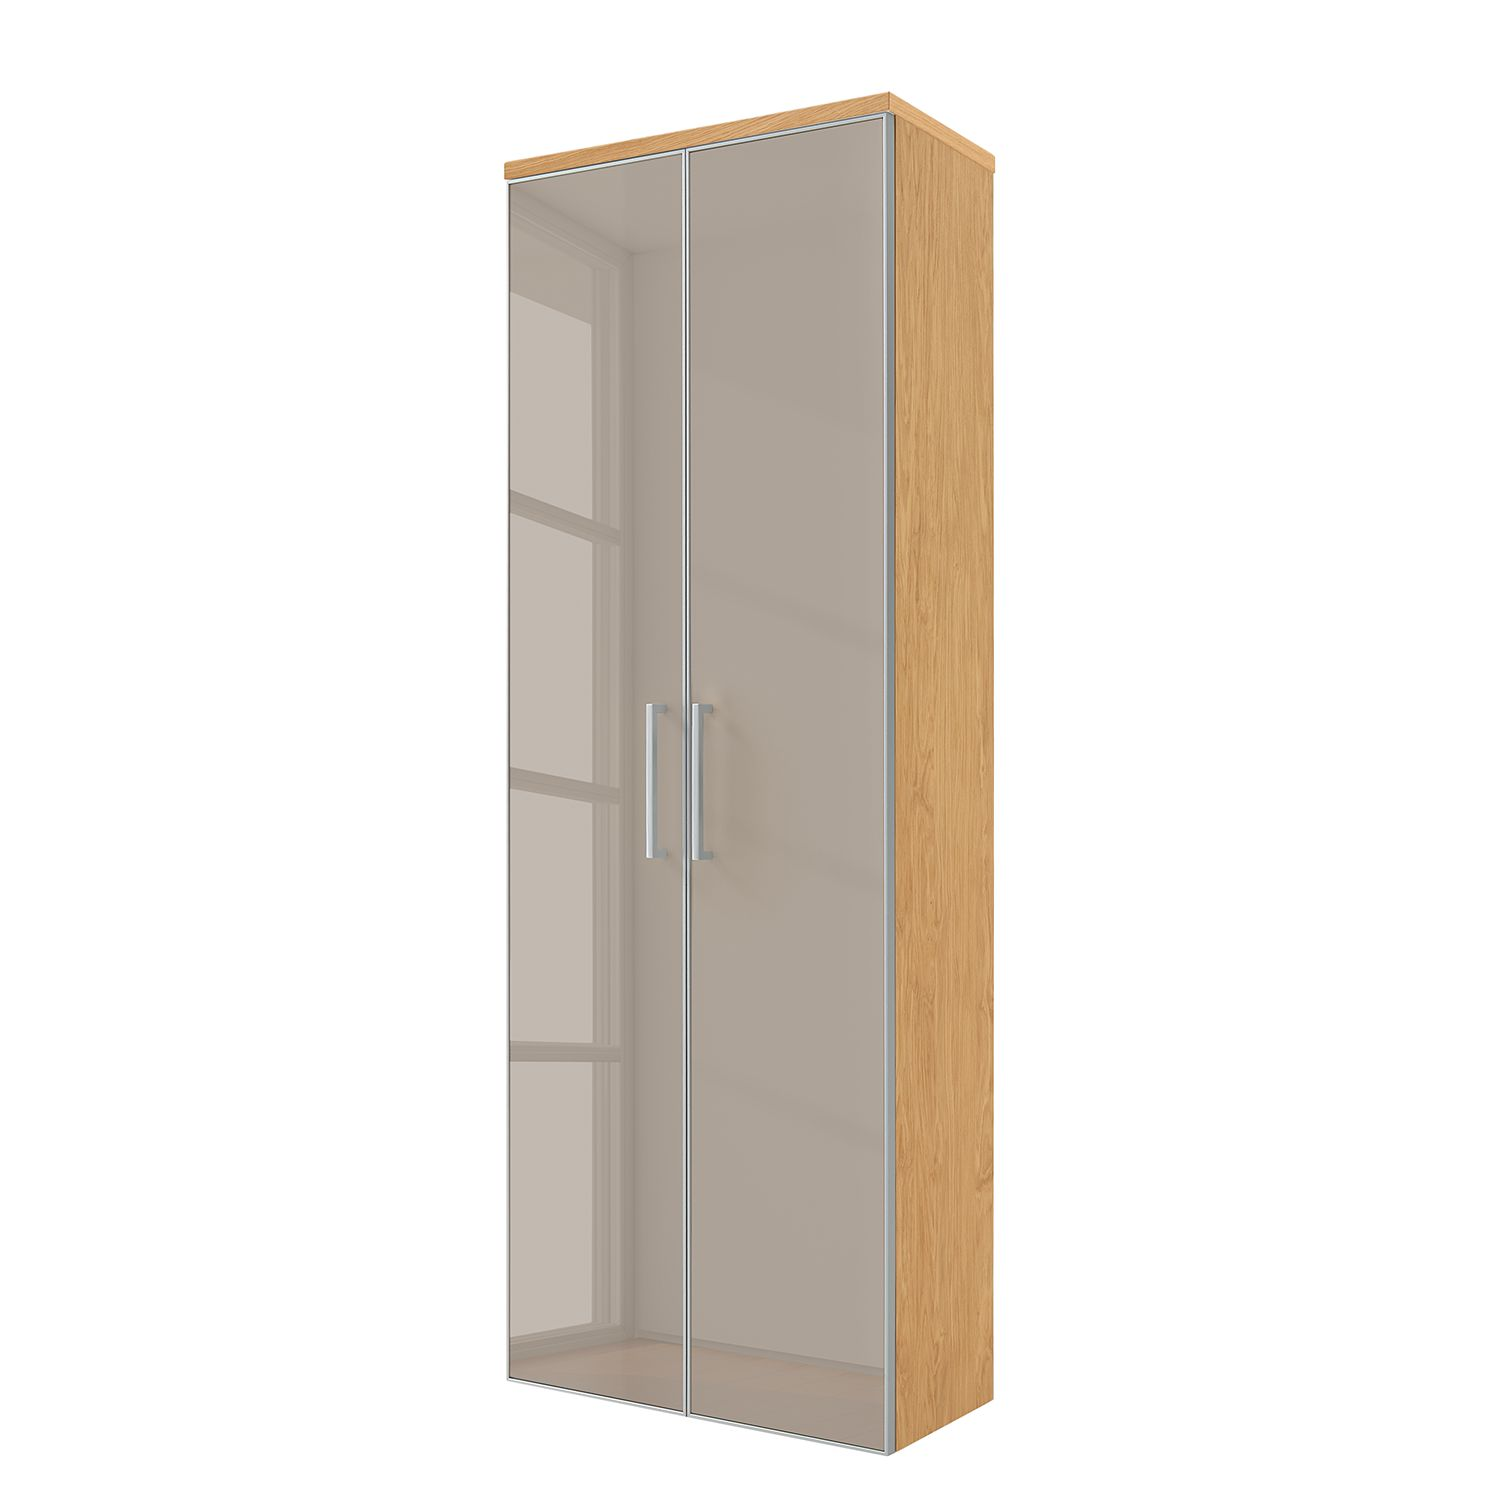 Armoire murale Alavere - Taupe / Chêne Bianco, Voss